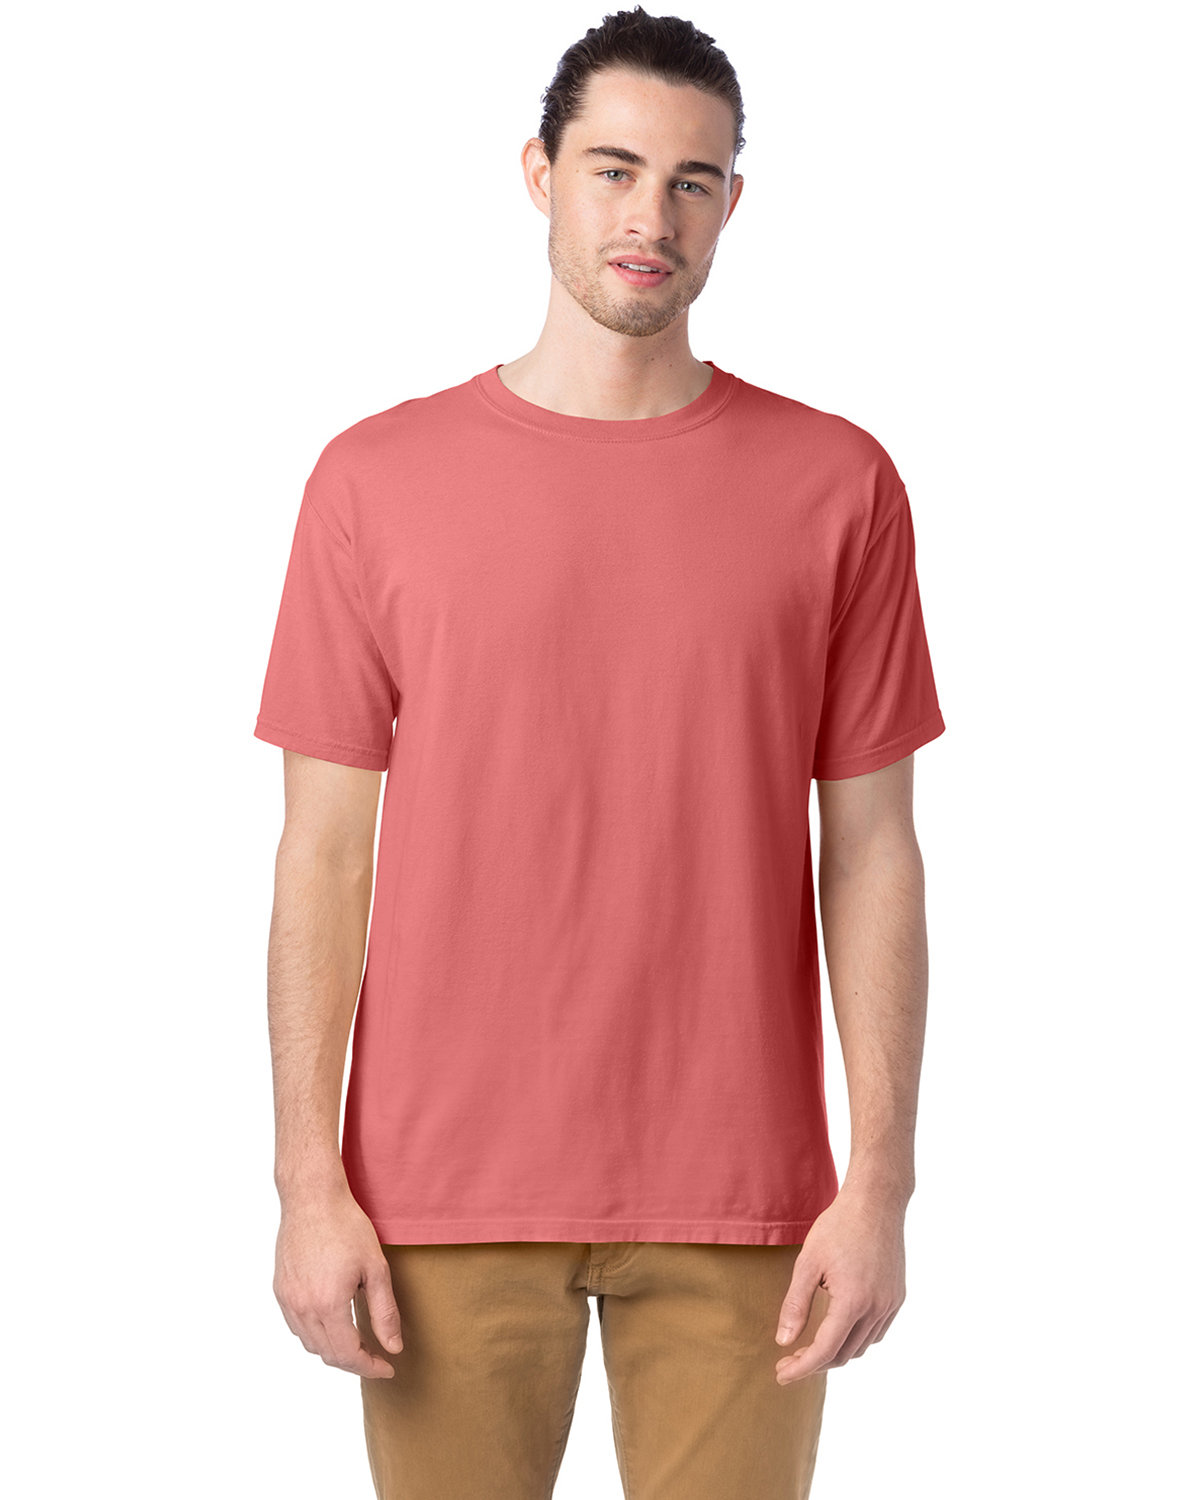 ComfortWash by Hanes Men's 5.5 oz., 100% Ringspun Cotton Garment-Dyed T-Shirt CORAL CRAZE